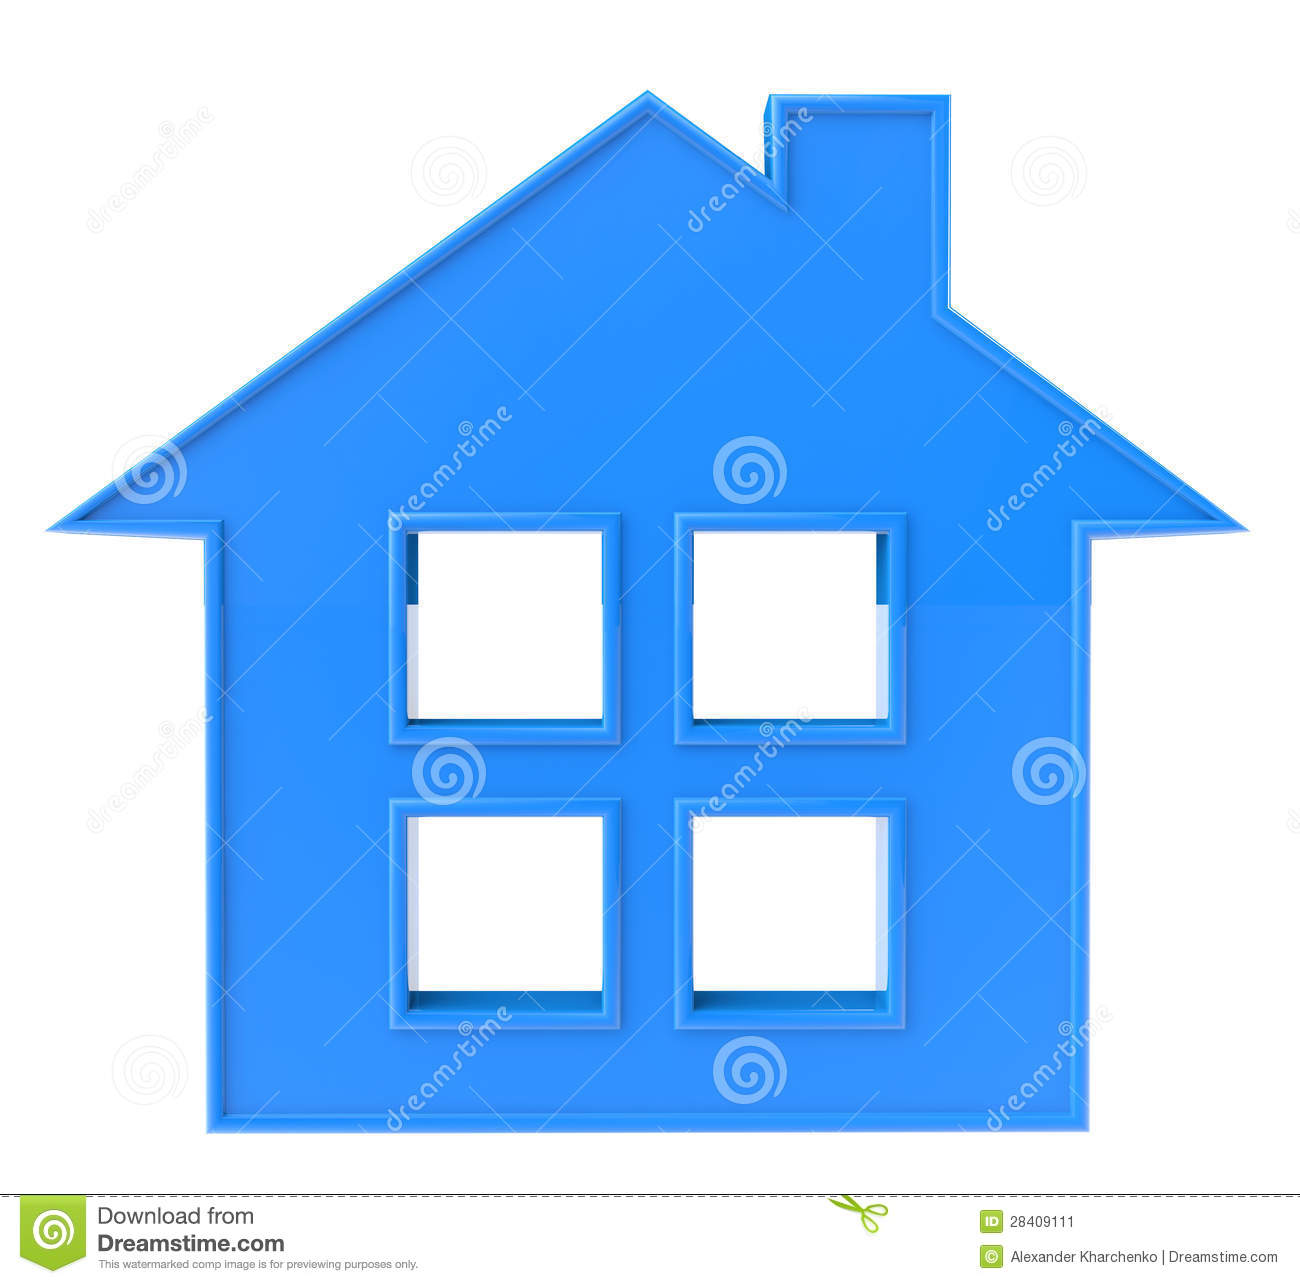 7 Home Blue Icon 3D Images